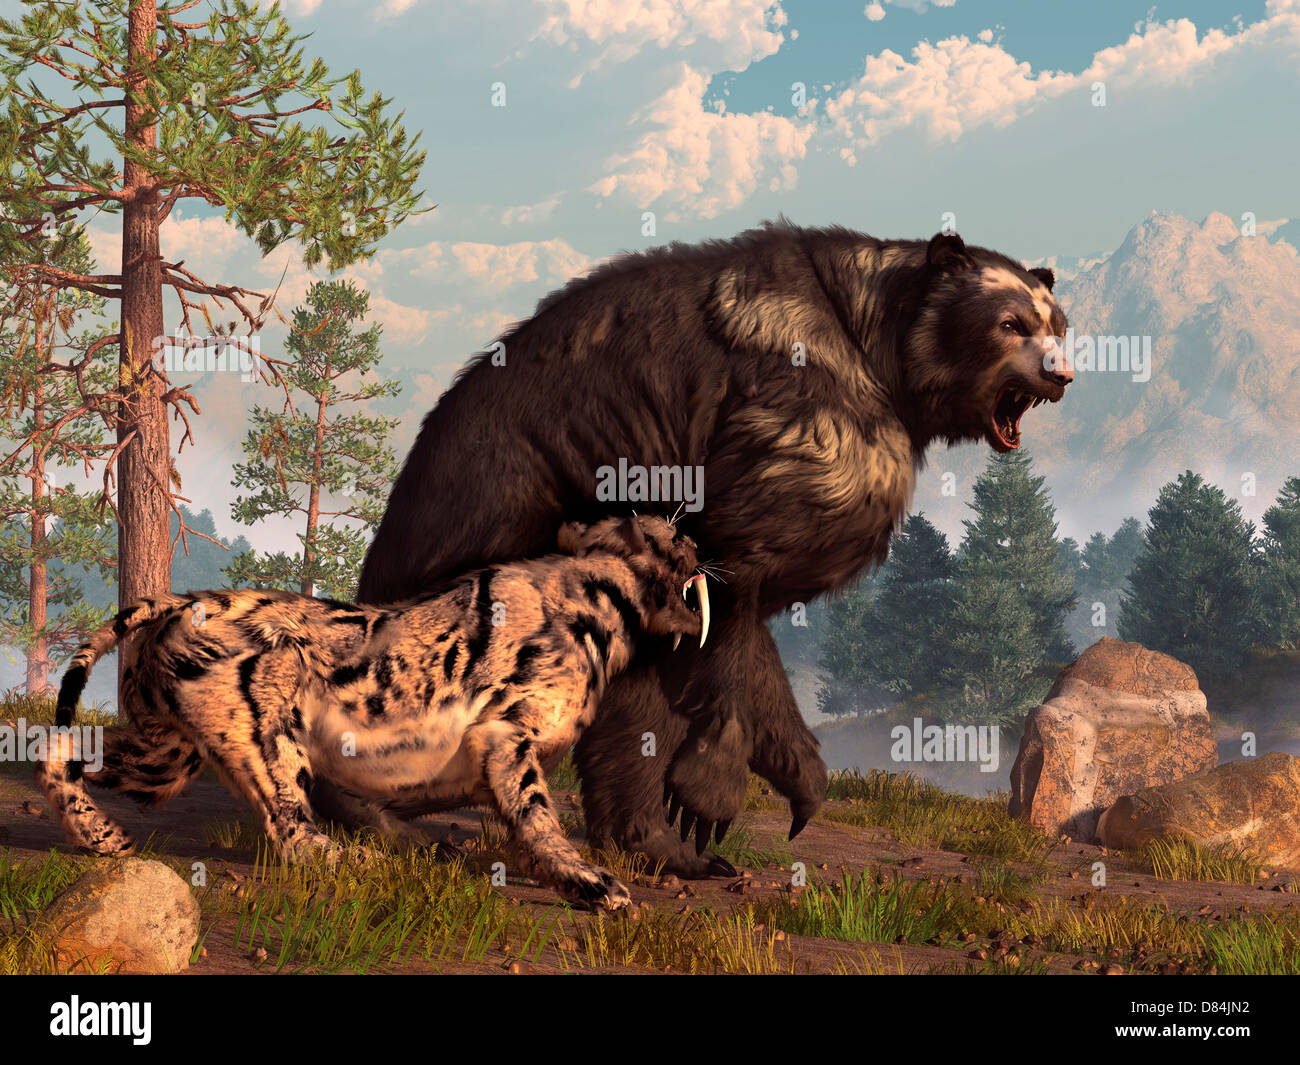 A saber-toothed cat tries to drive a short-faced bear out of its territory. The bear is annoyed and roars back in - Stock Image